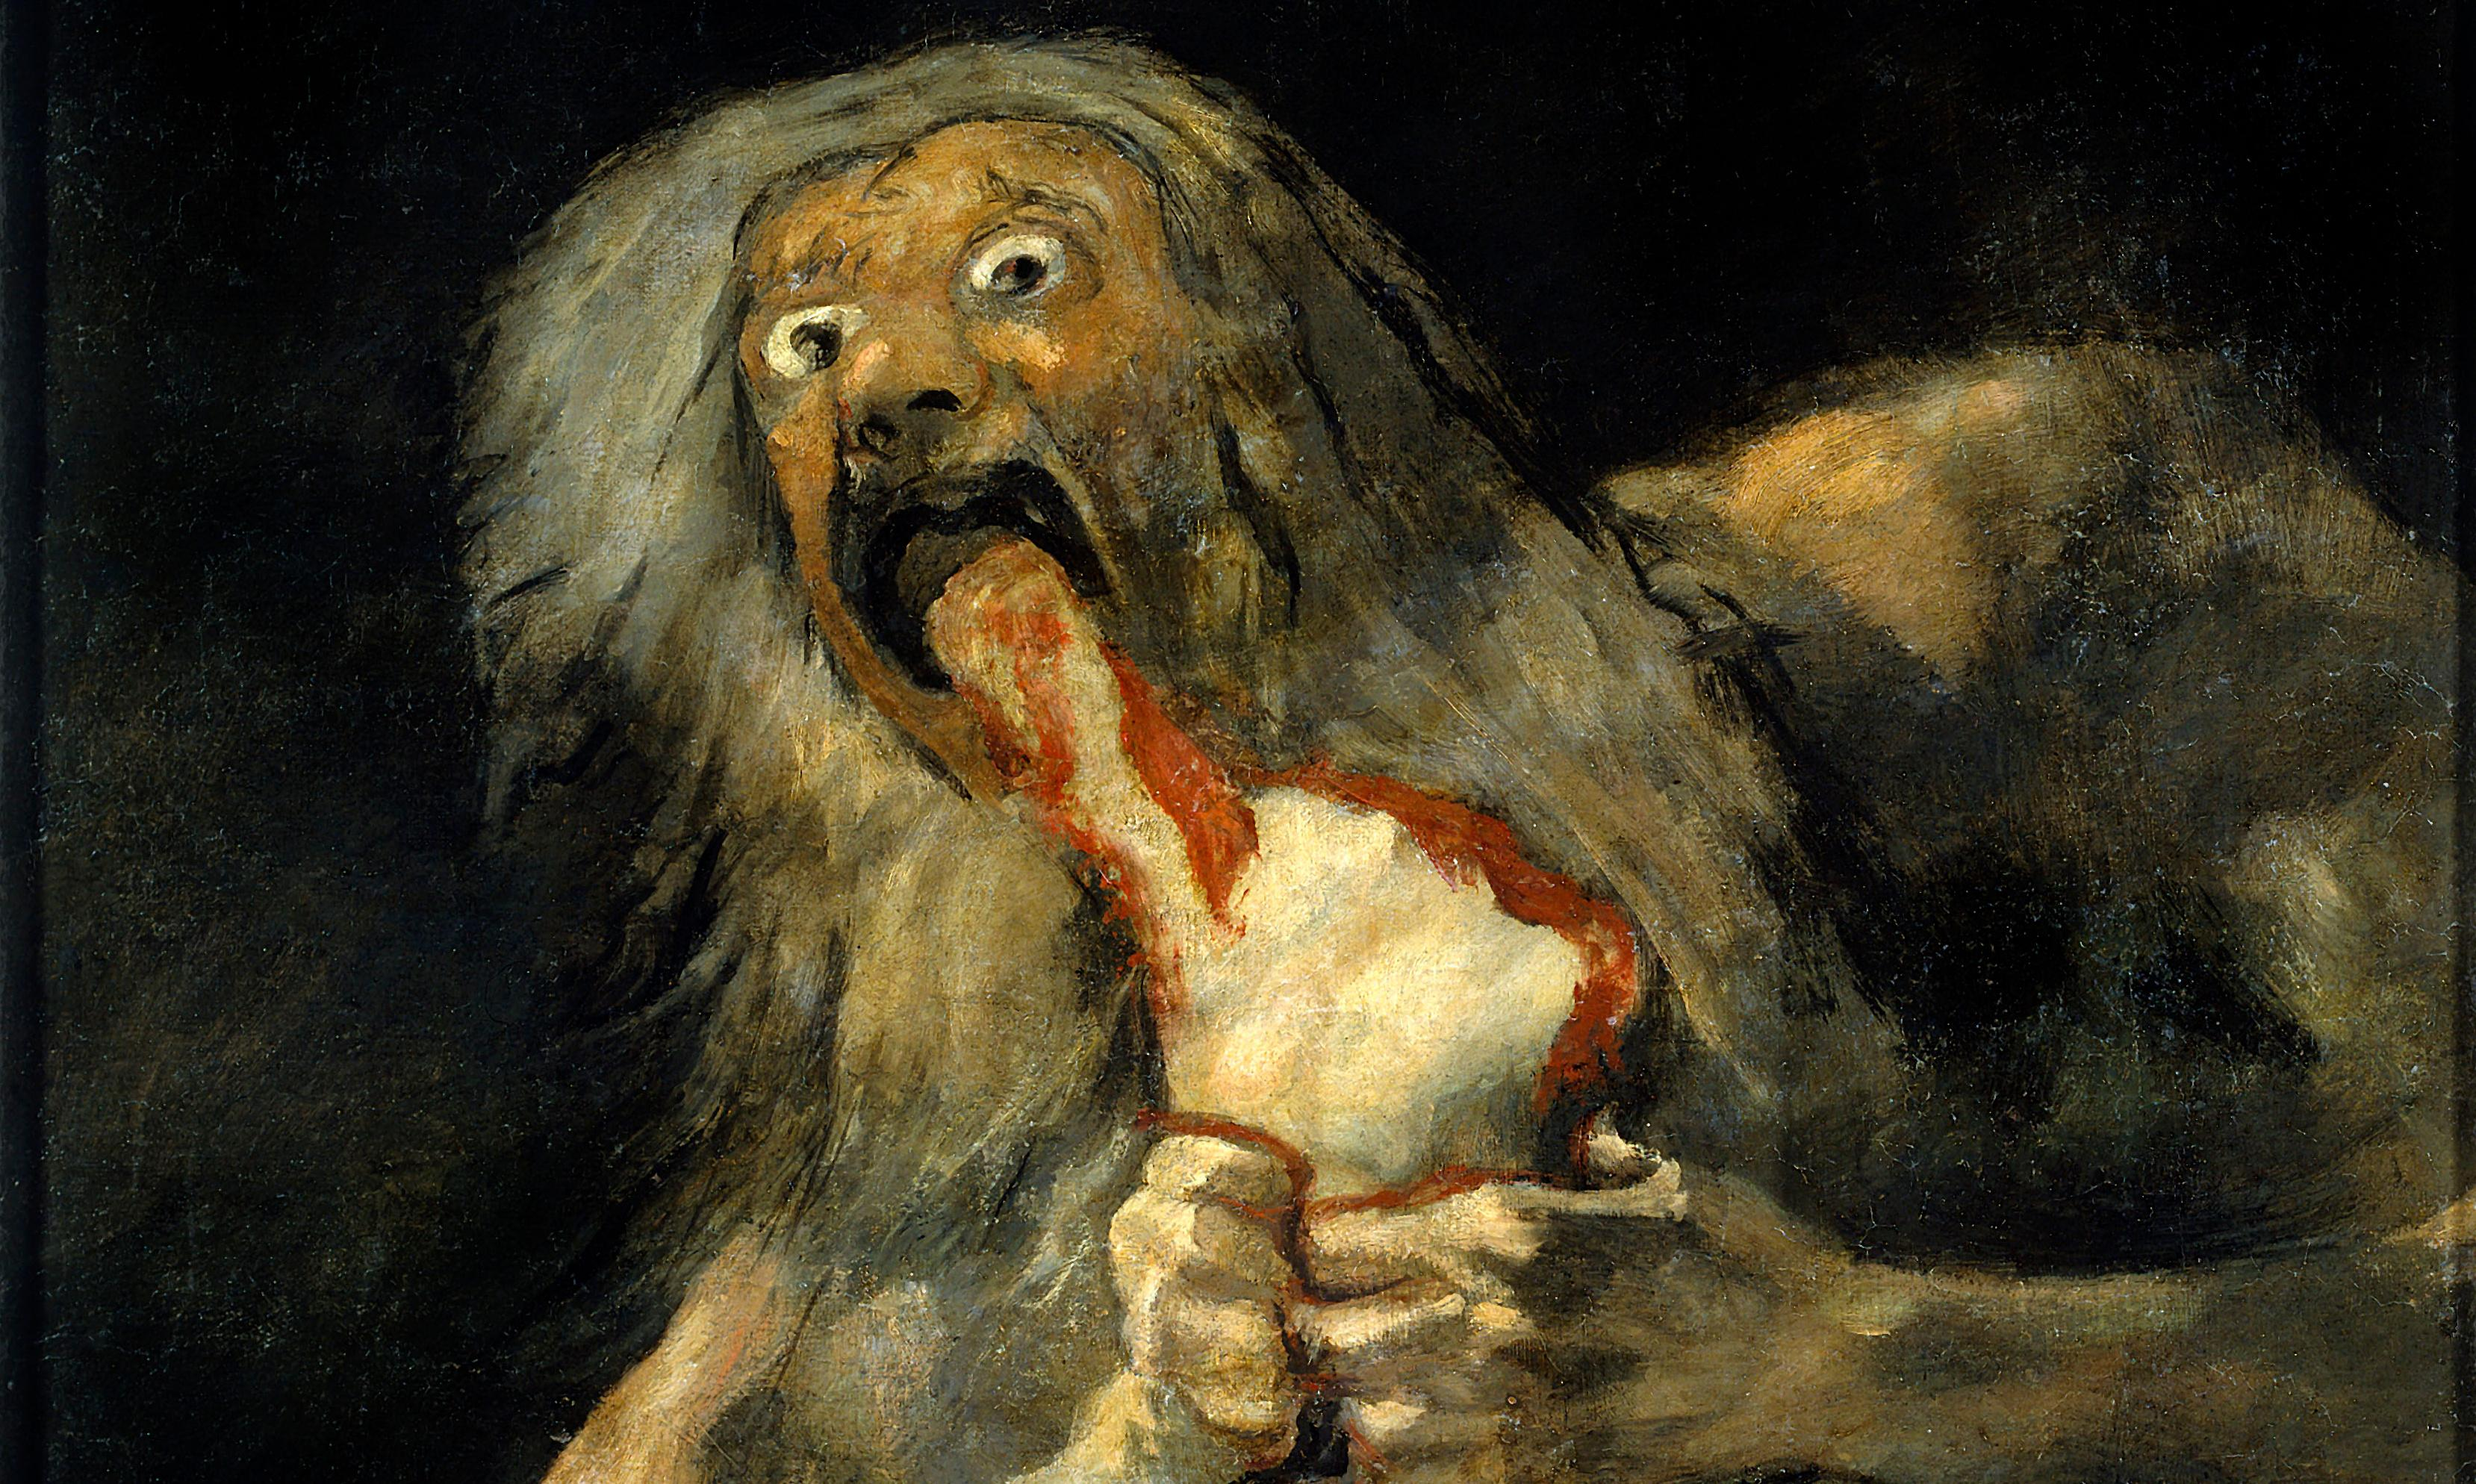 Goya's Black Paintings: 'Some people can hardly even look at them'